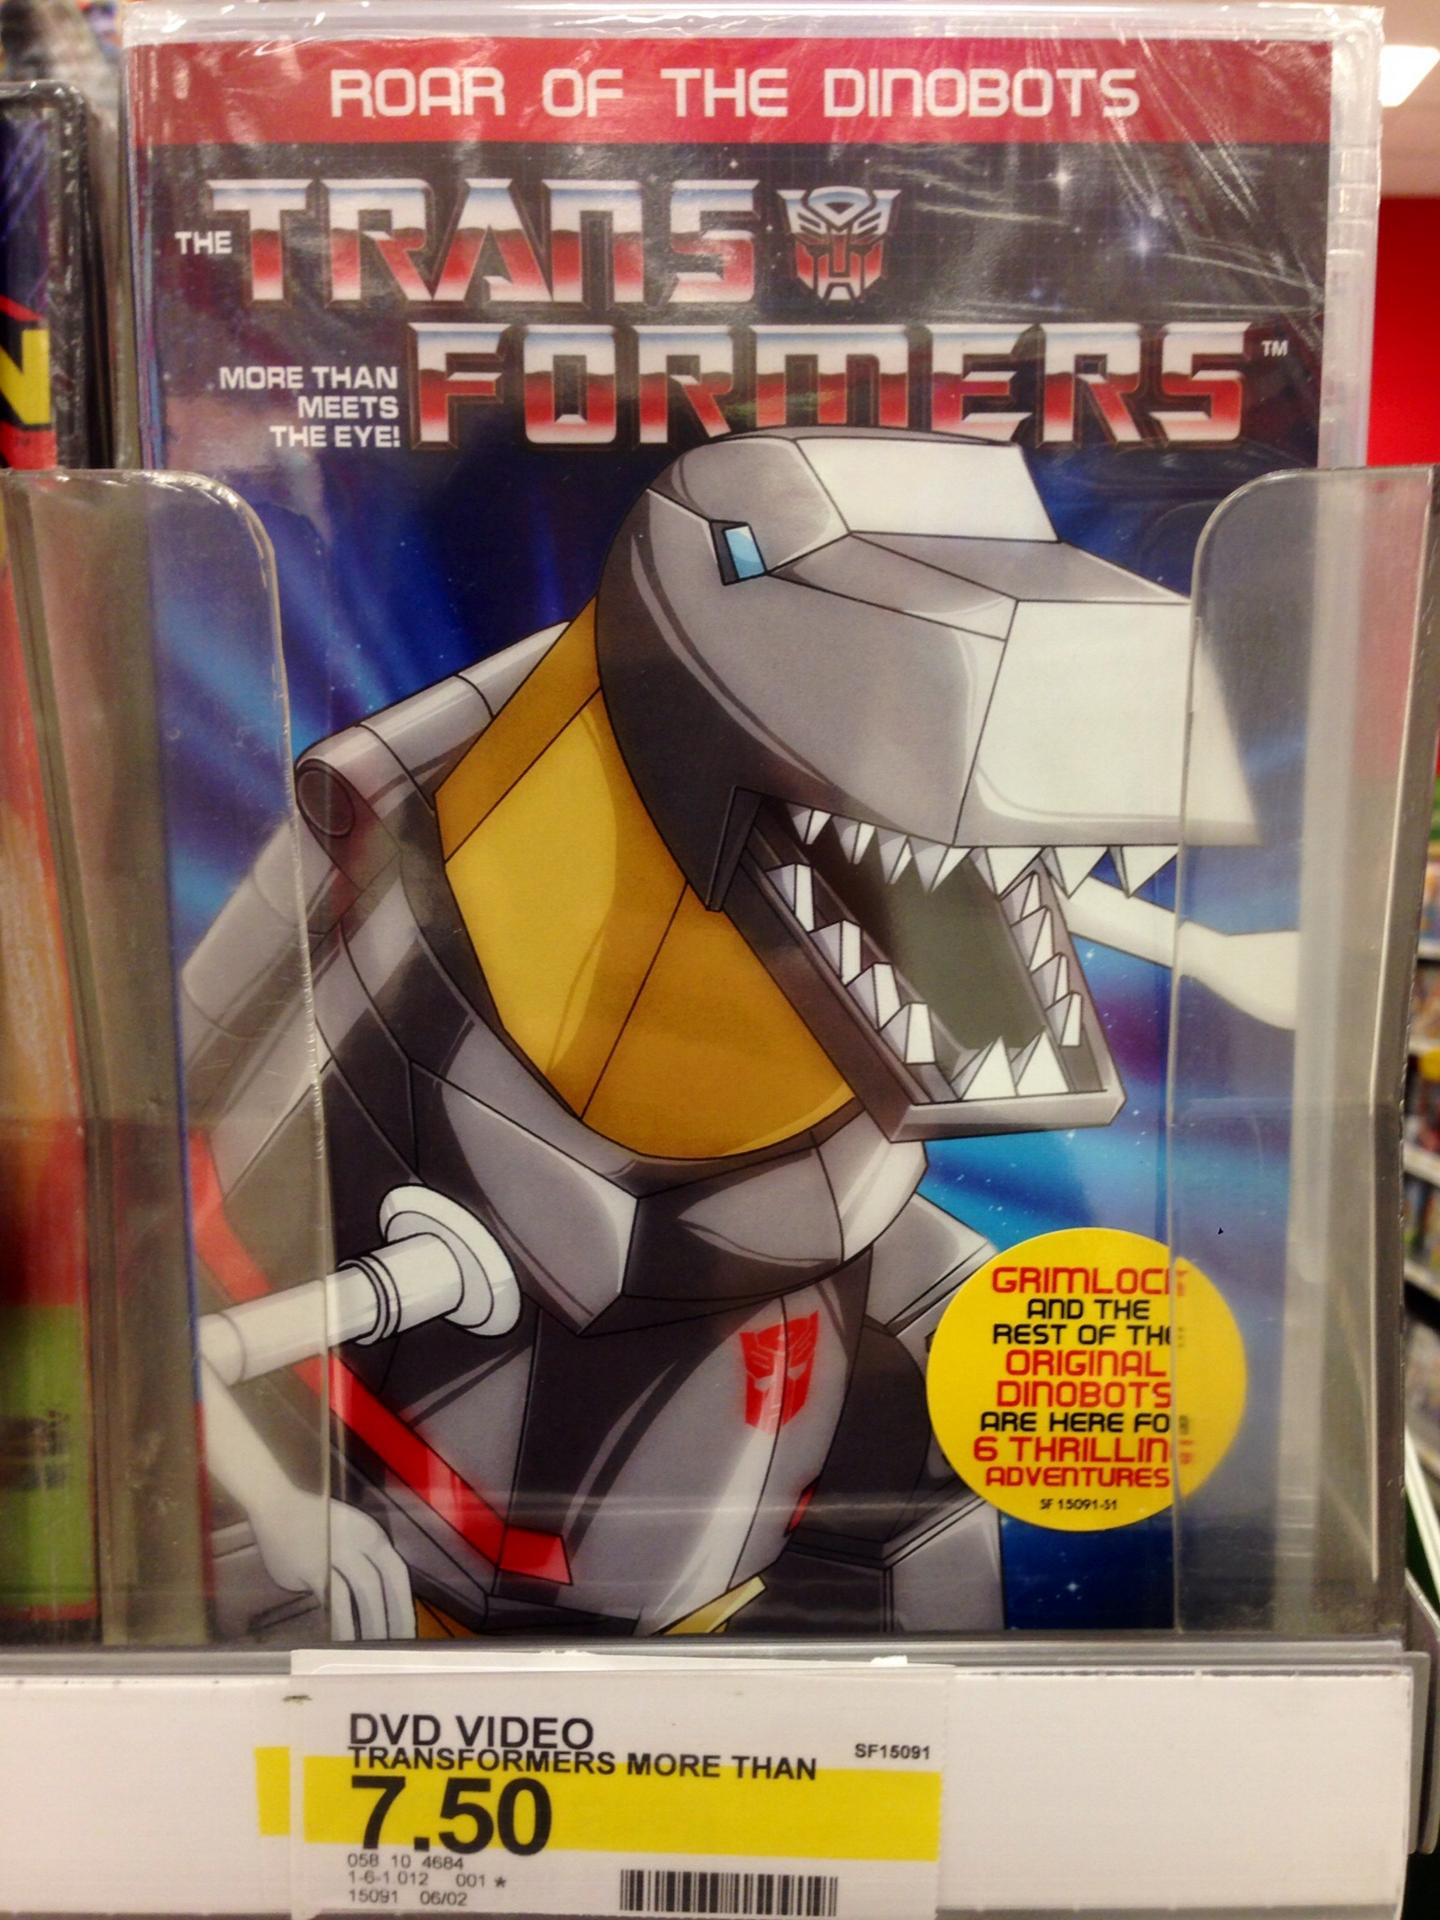 Roar-of-The-Dinobots